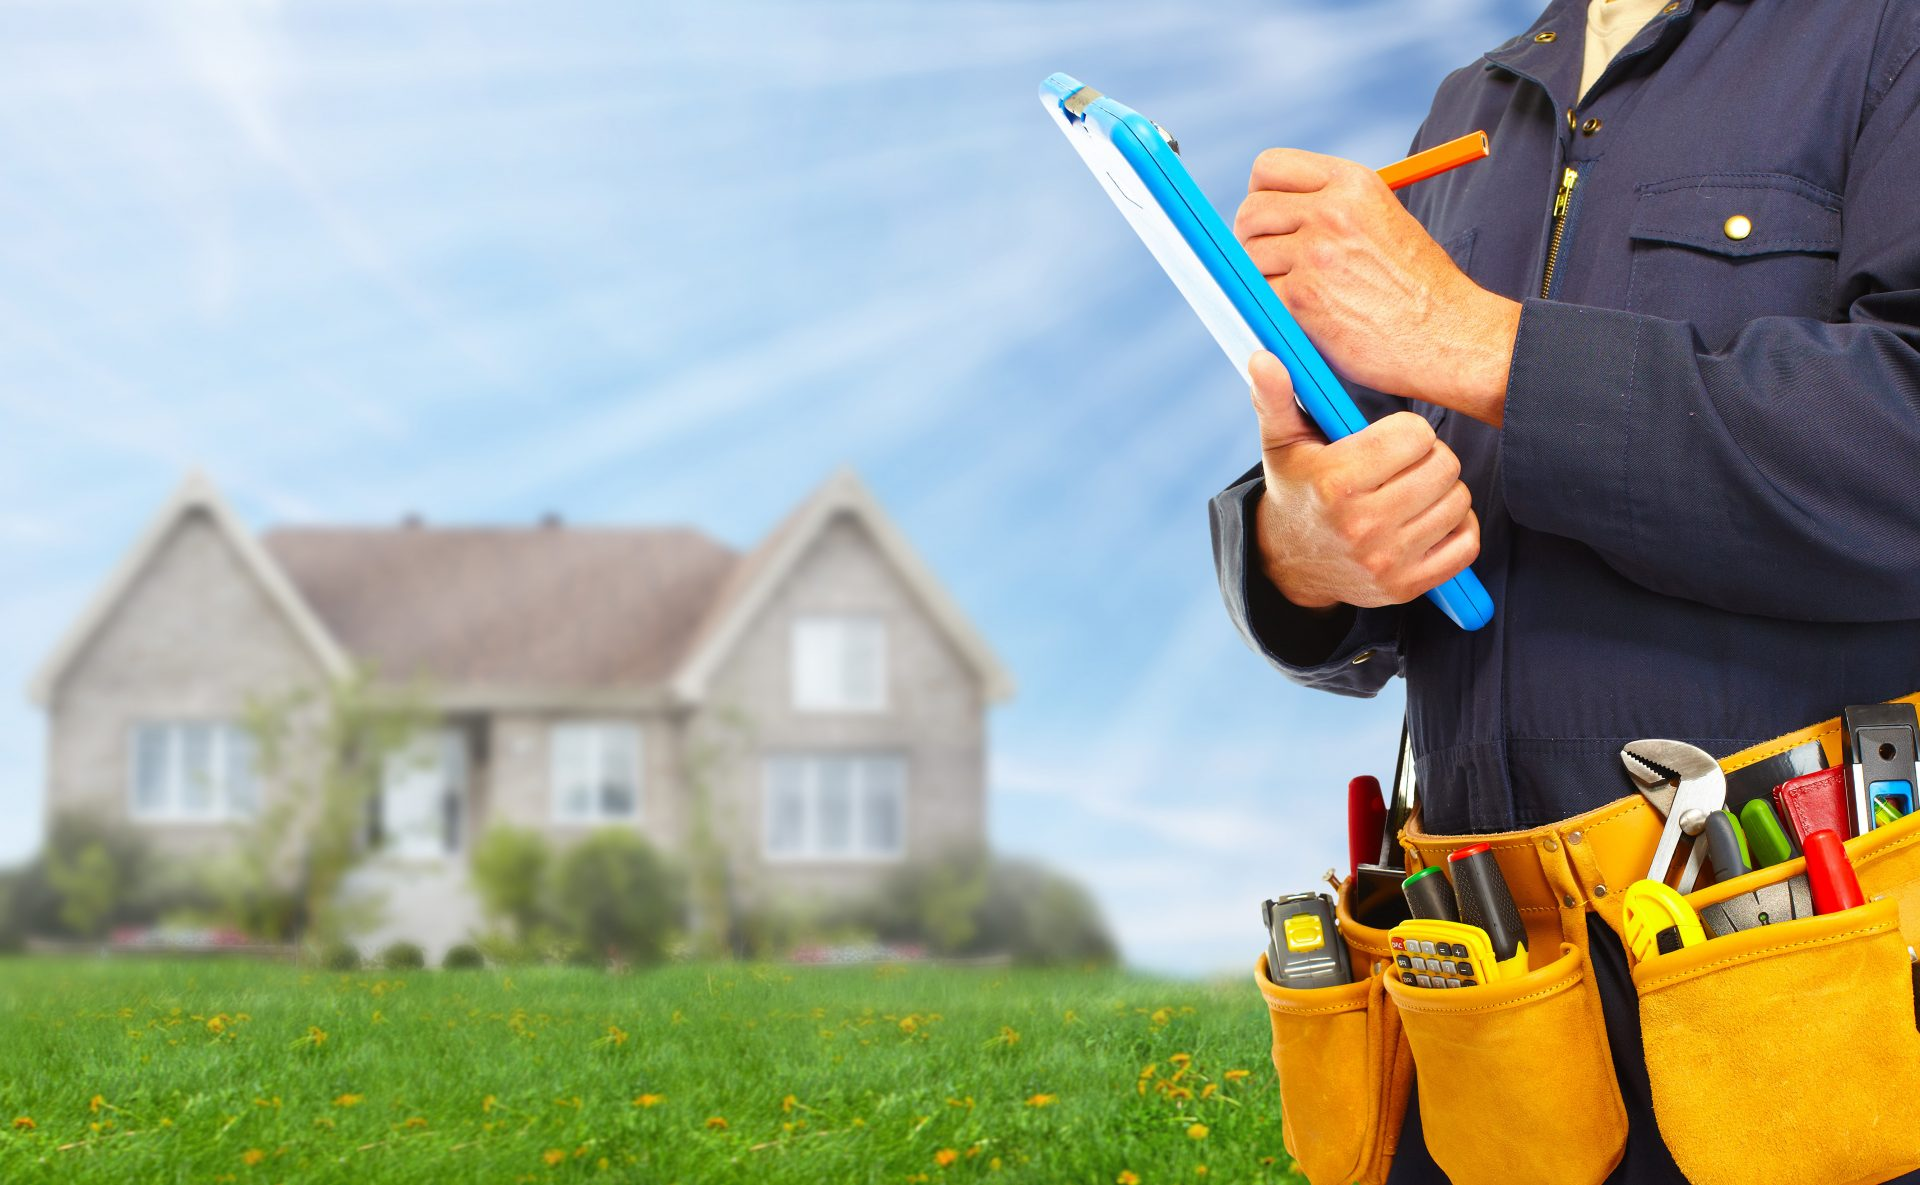 Residential Electrician near Bowie MD